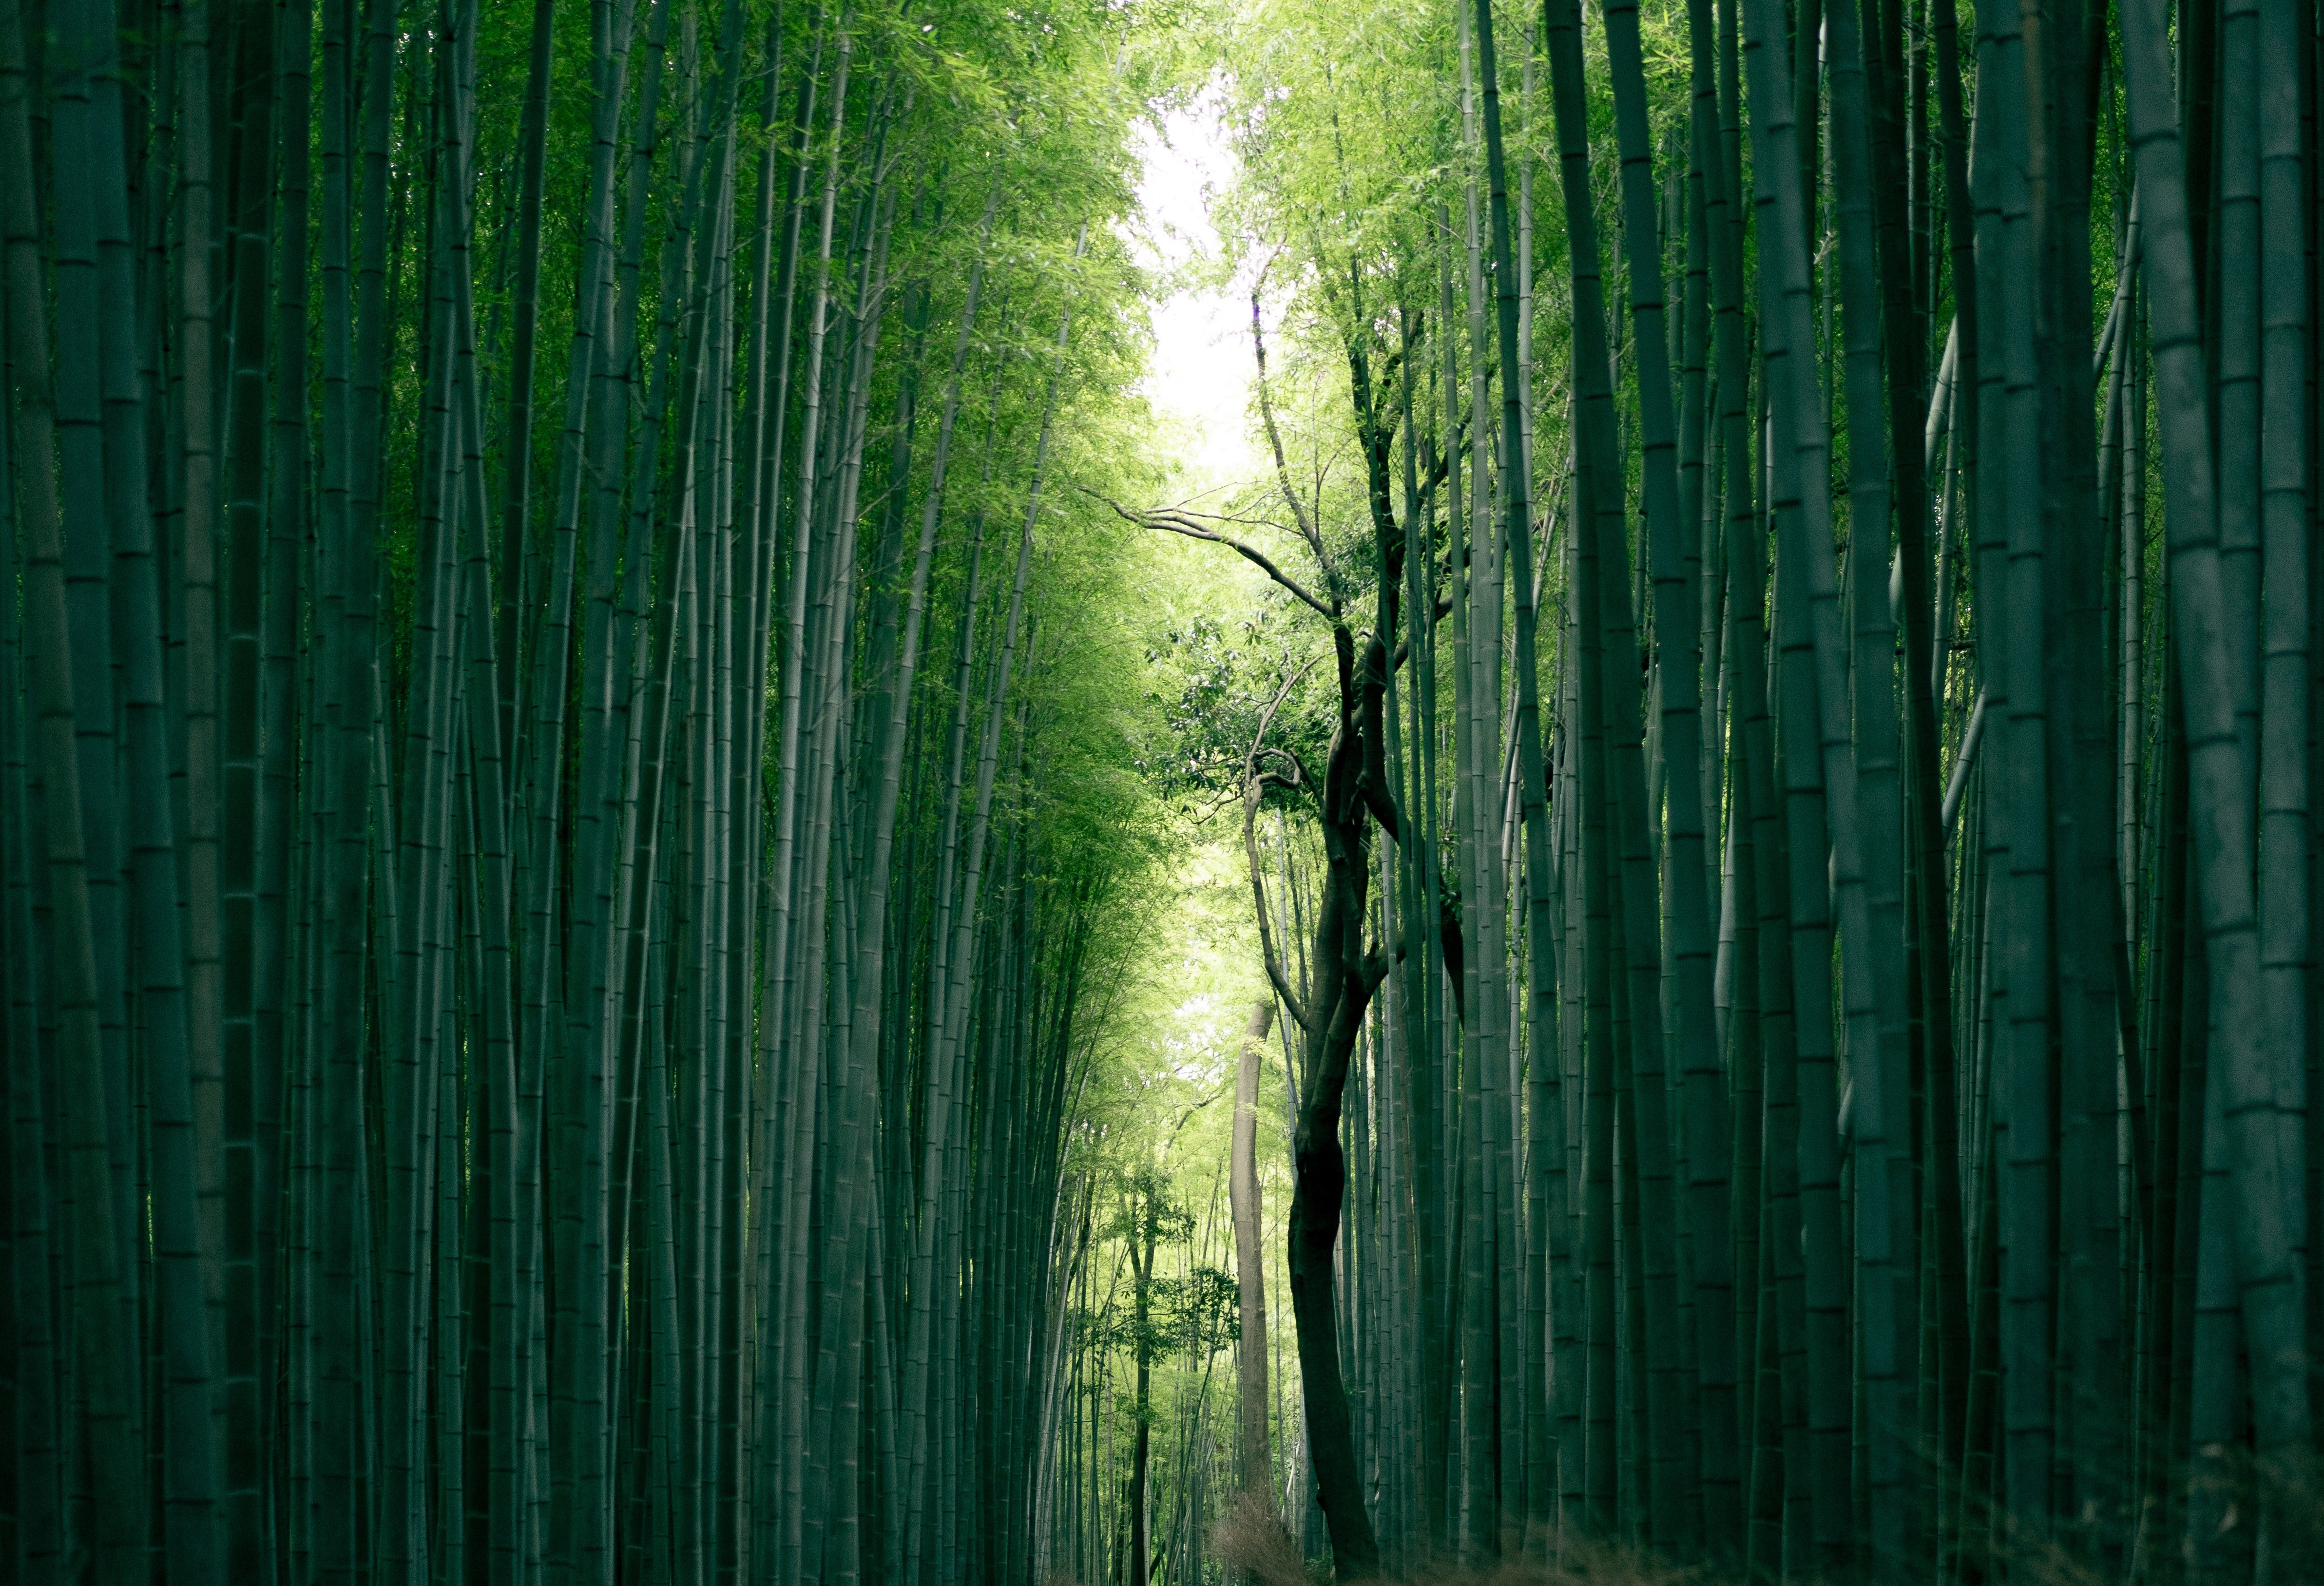 Photo by JuniperPhoton: Bamboo in Kyoto